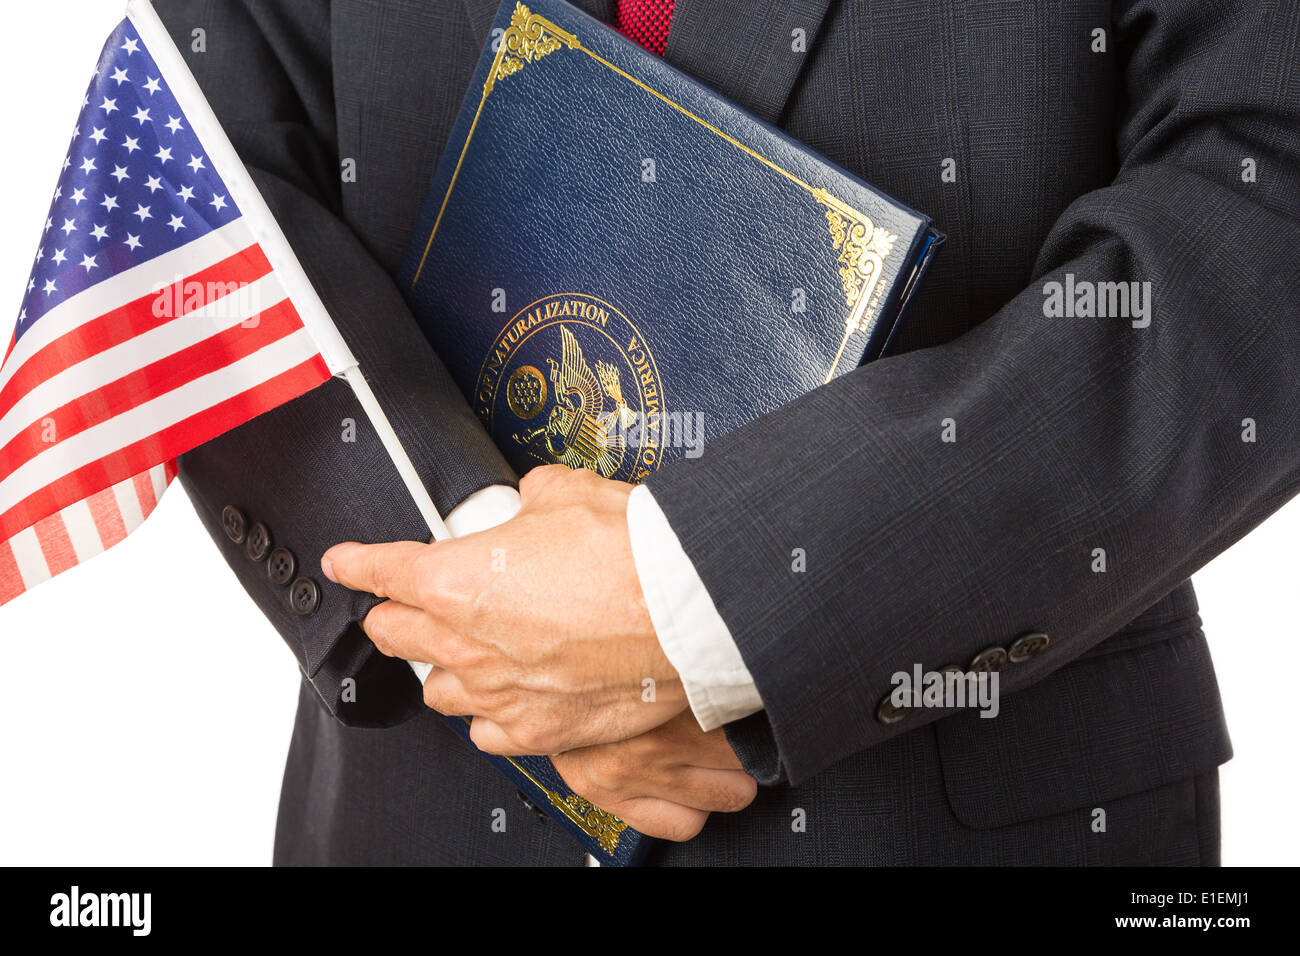 Man with US flag and naturalization certificate - Stock Image